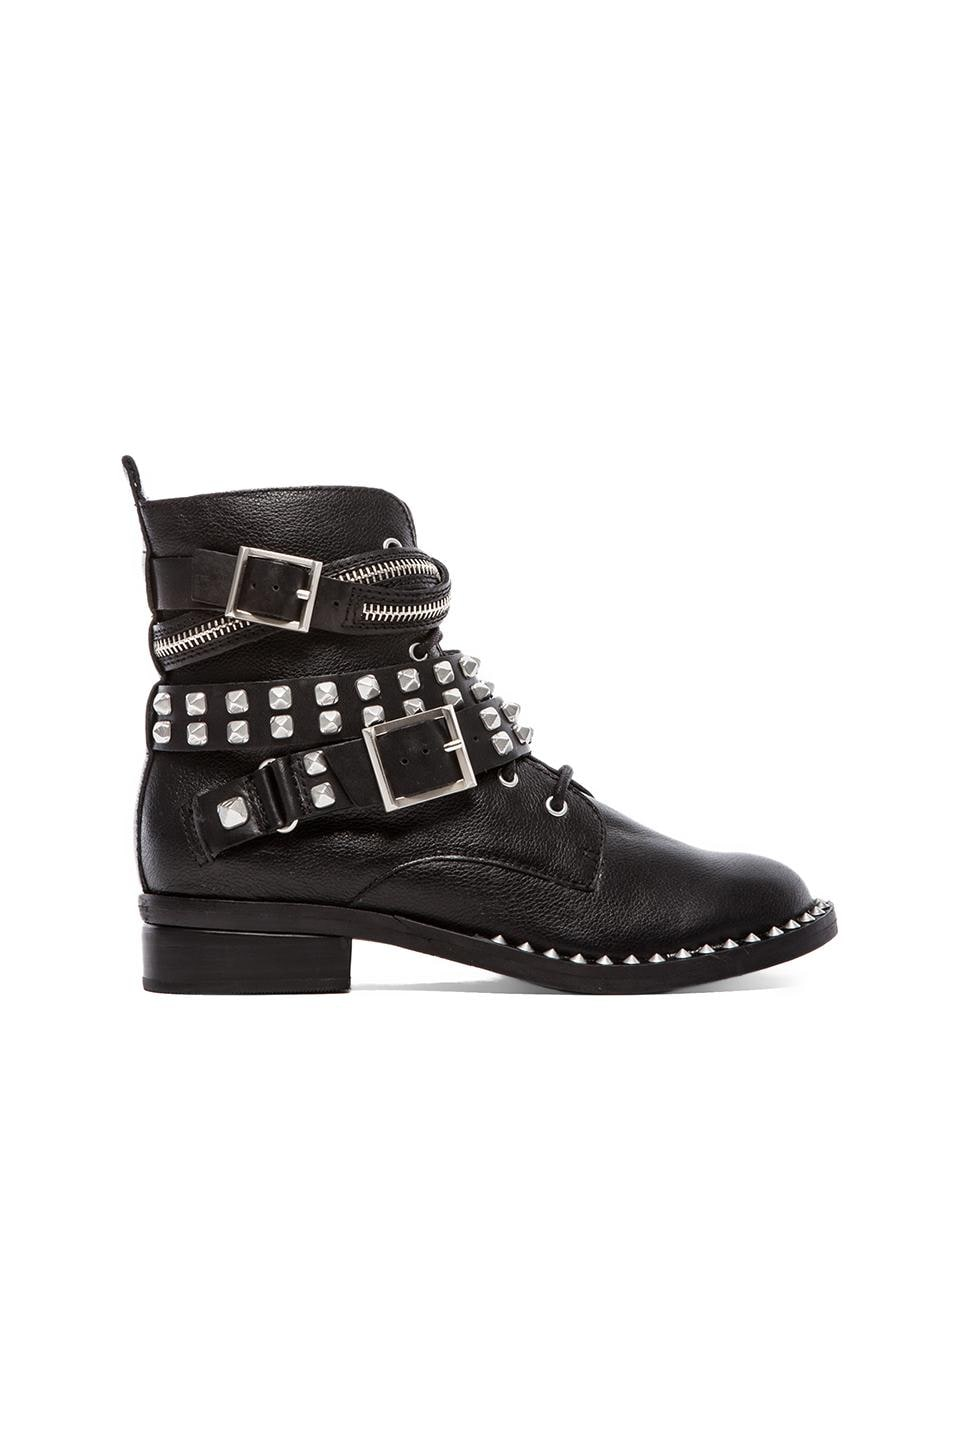 Dolce Vita Stirling Boot in Black